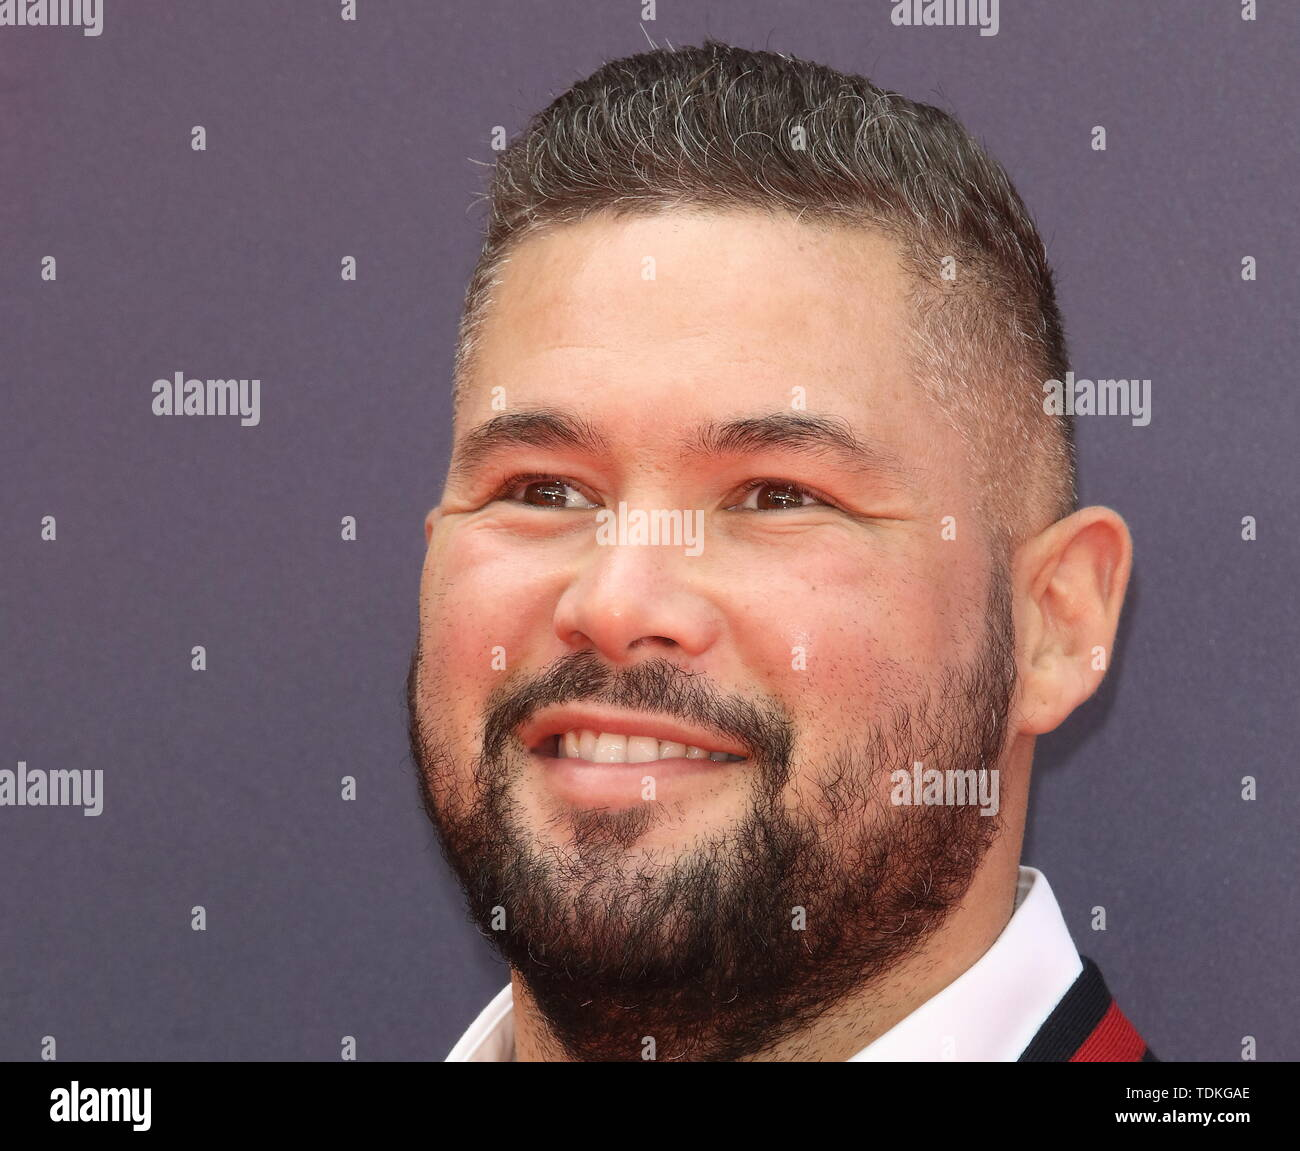 London, UK. 16th June, 2019. Tony Bellew attends the European Premiere of Toy Story 4 at Odeon Luxe, Leicester Square in London. Credit: SOPA Images Limited/Alamy Live News - Stock Image